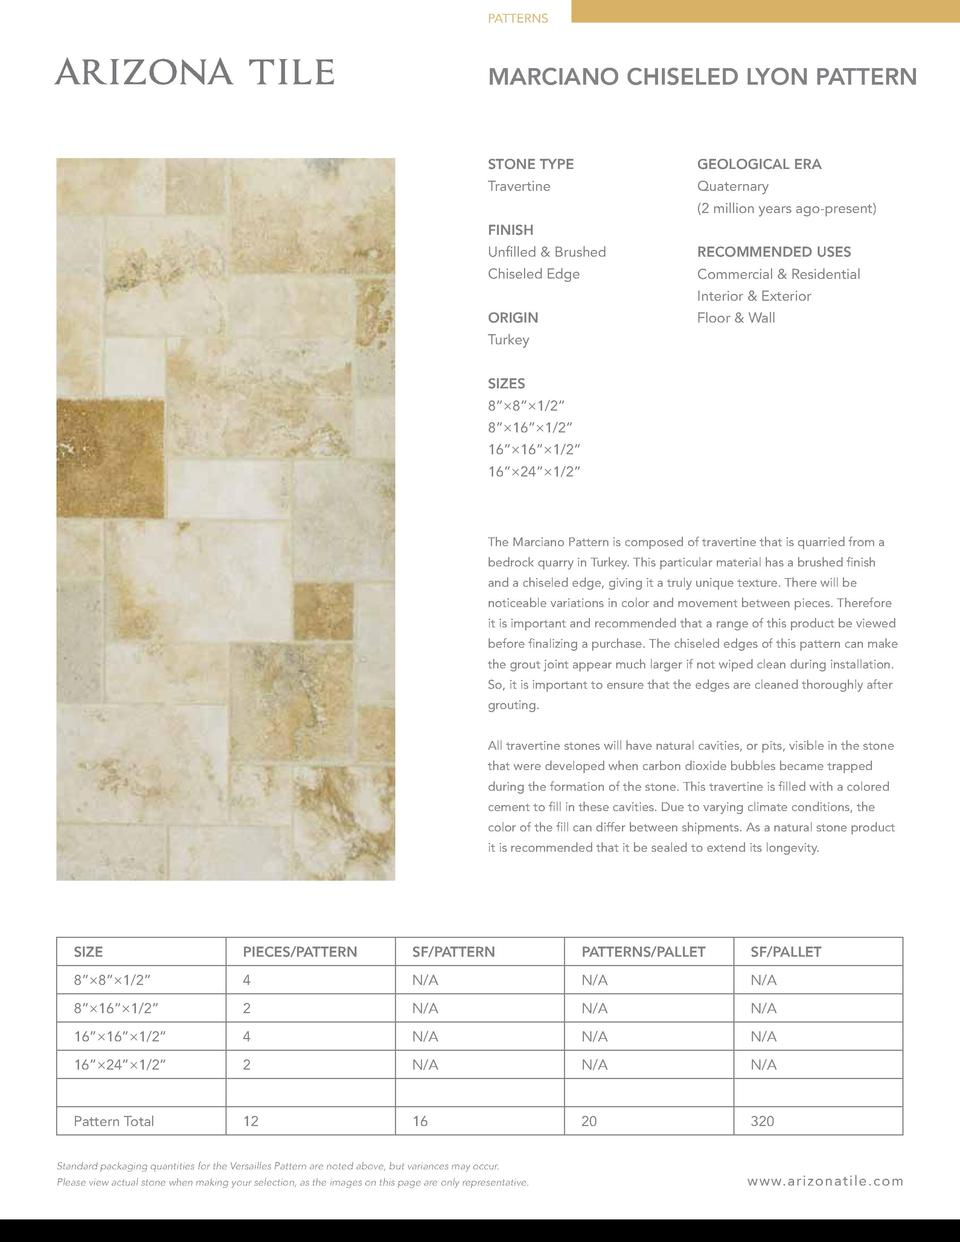 PATTERNS  MARCIANO CHISELED LYON PATTERN  STONE TYPE  GEOLOGICAL ERA  Travertine  Quaternary  2 million years ago-present ...